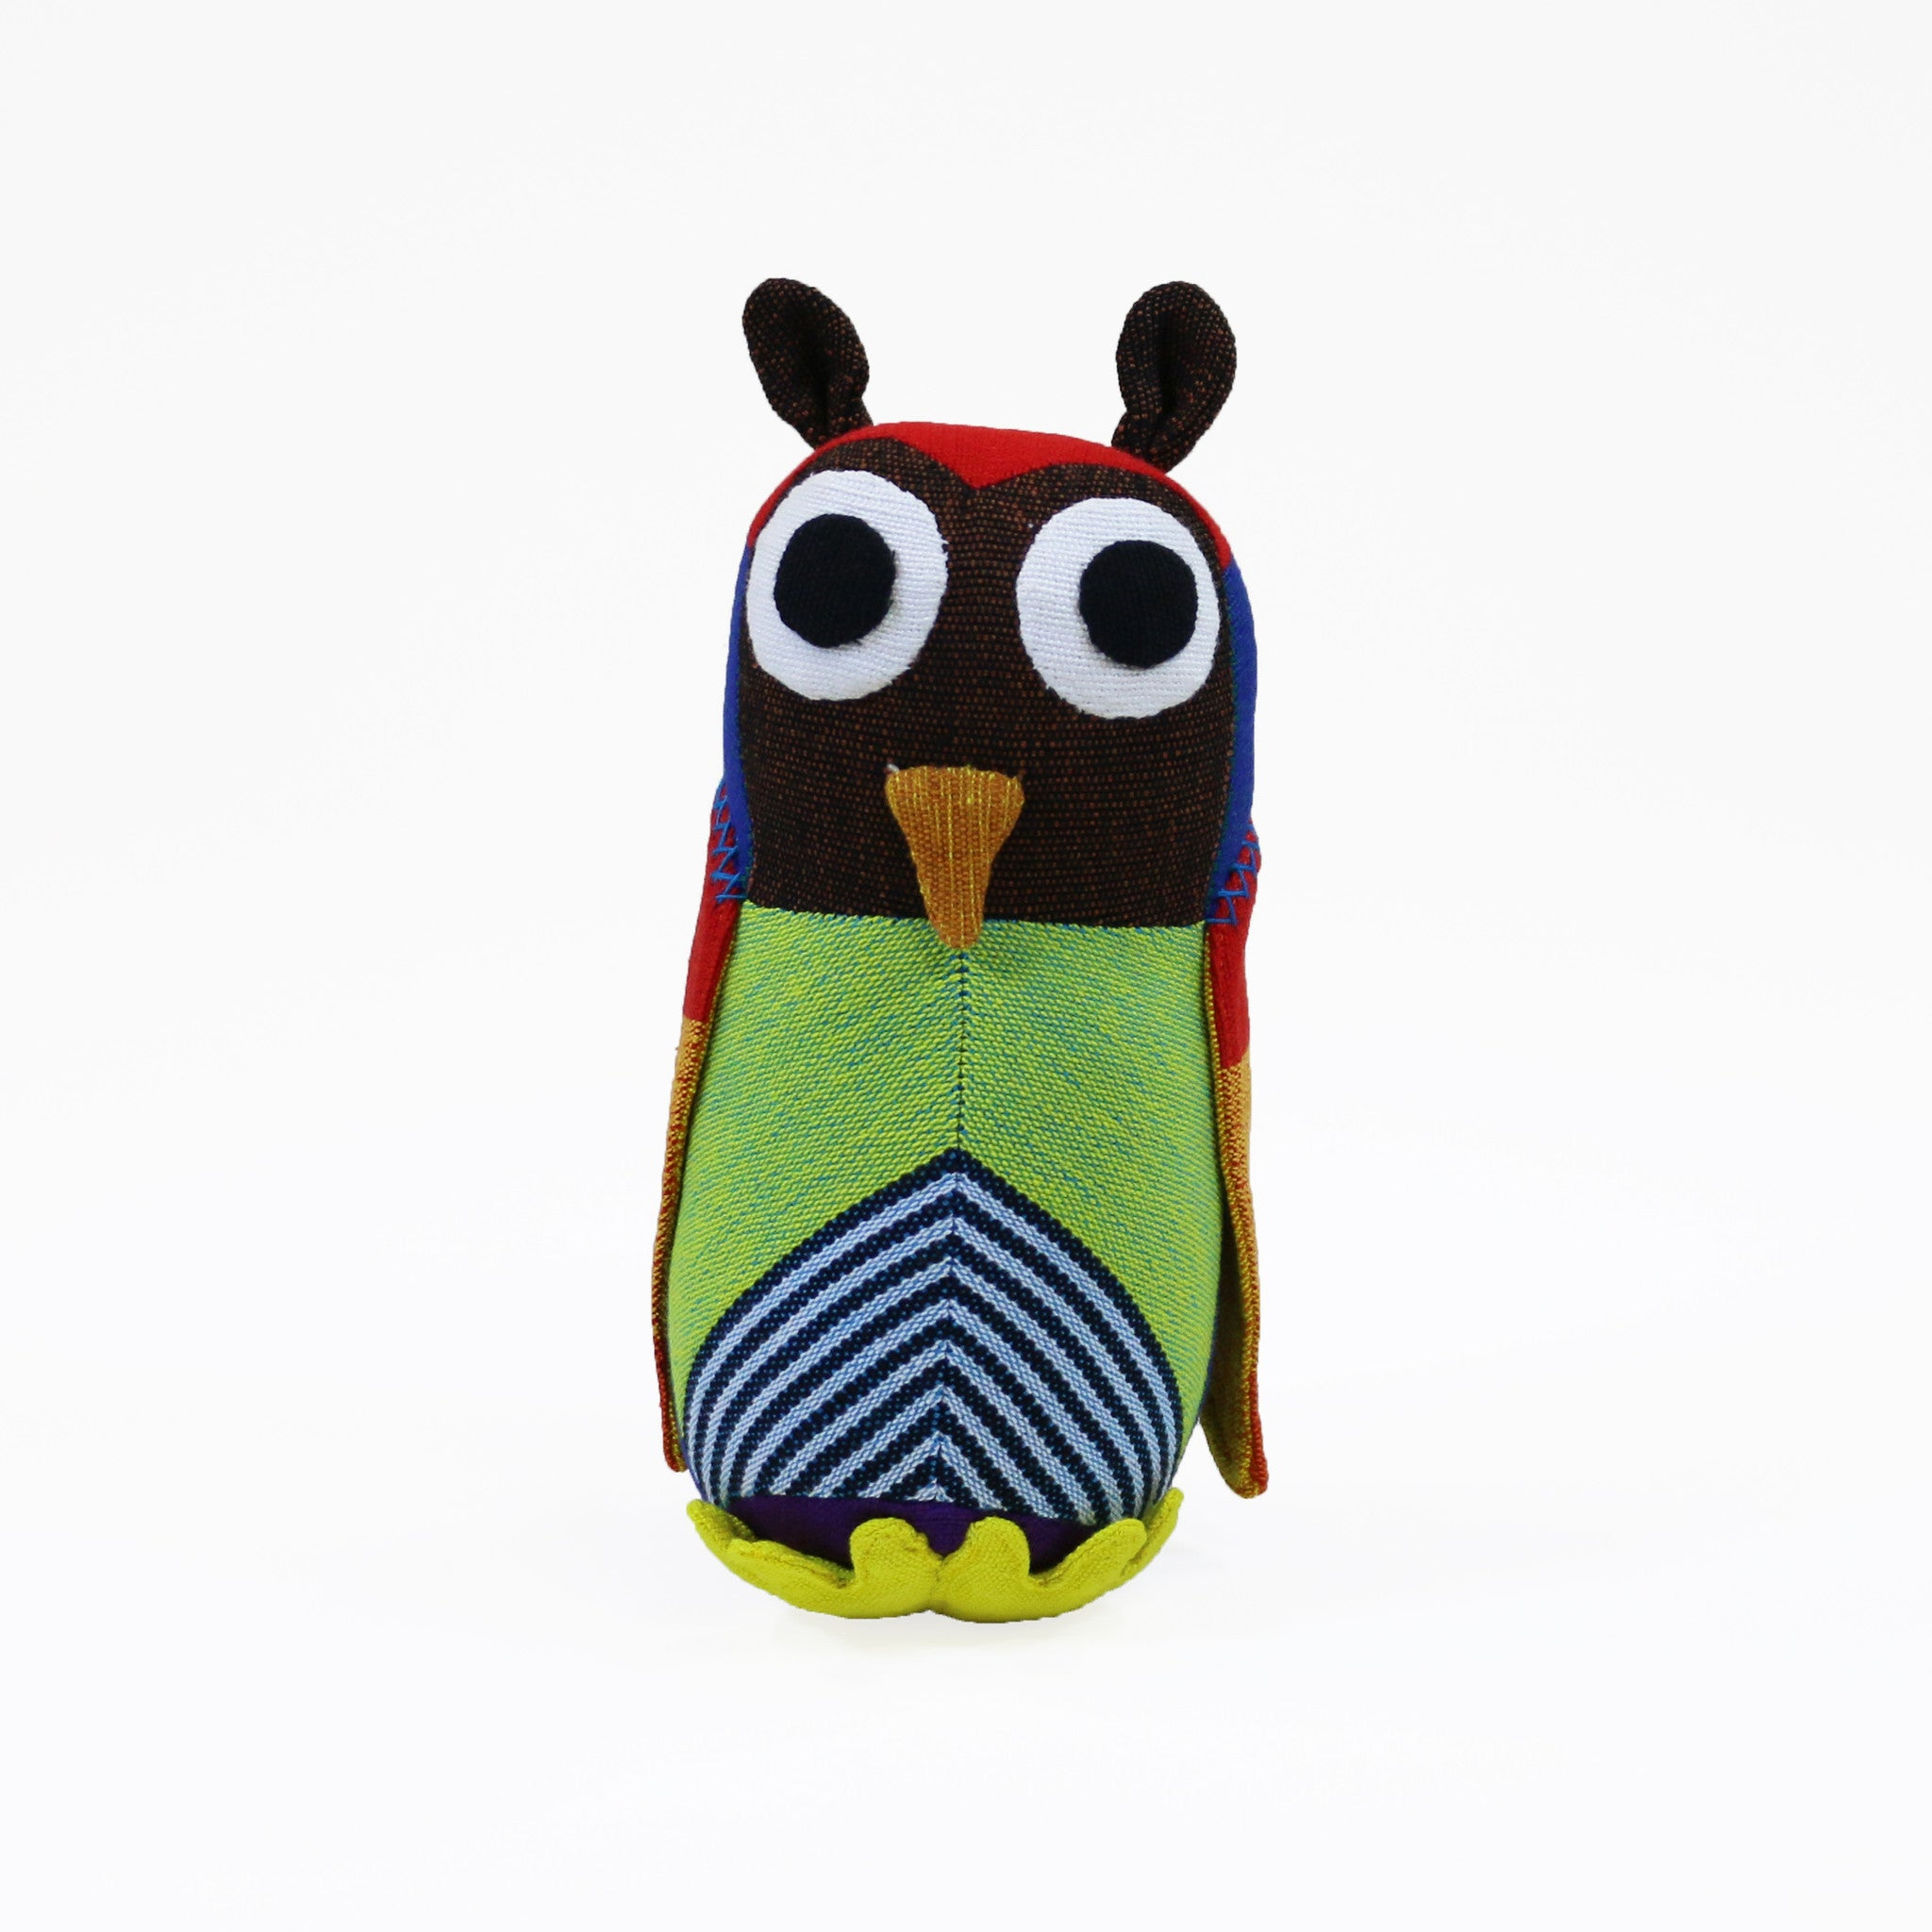 Owl Toy - Harper, the Owl (small size)